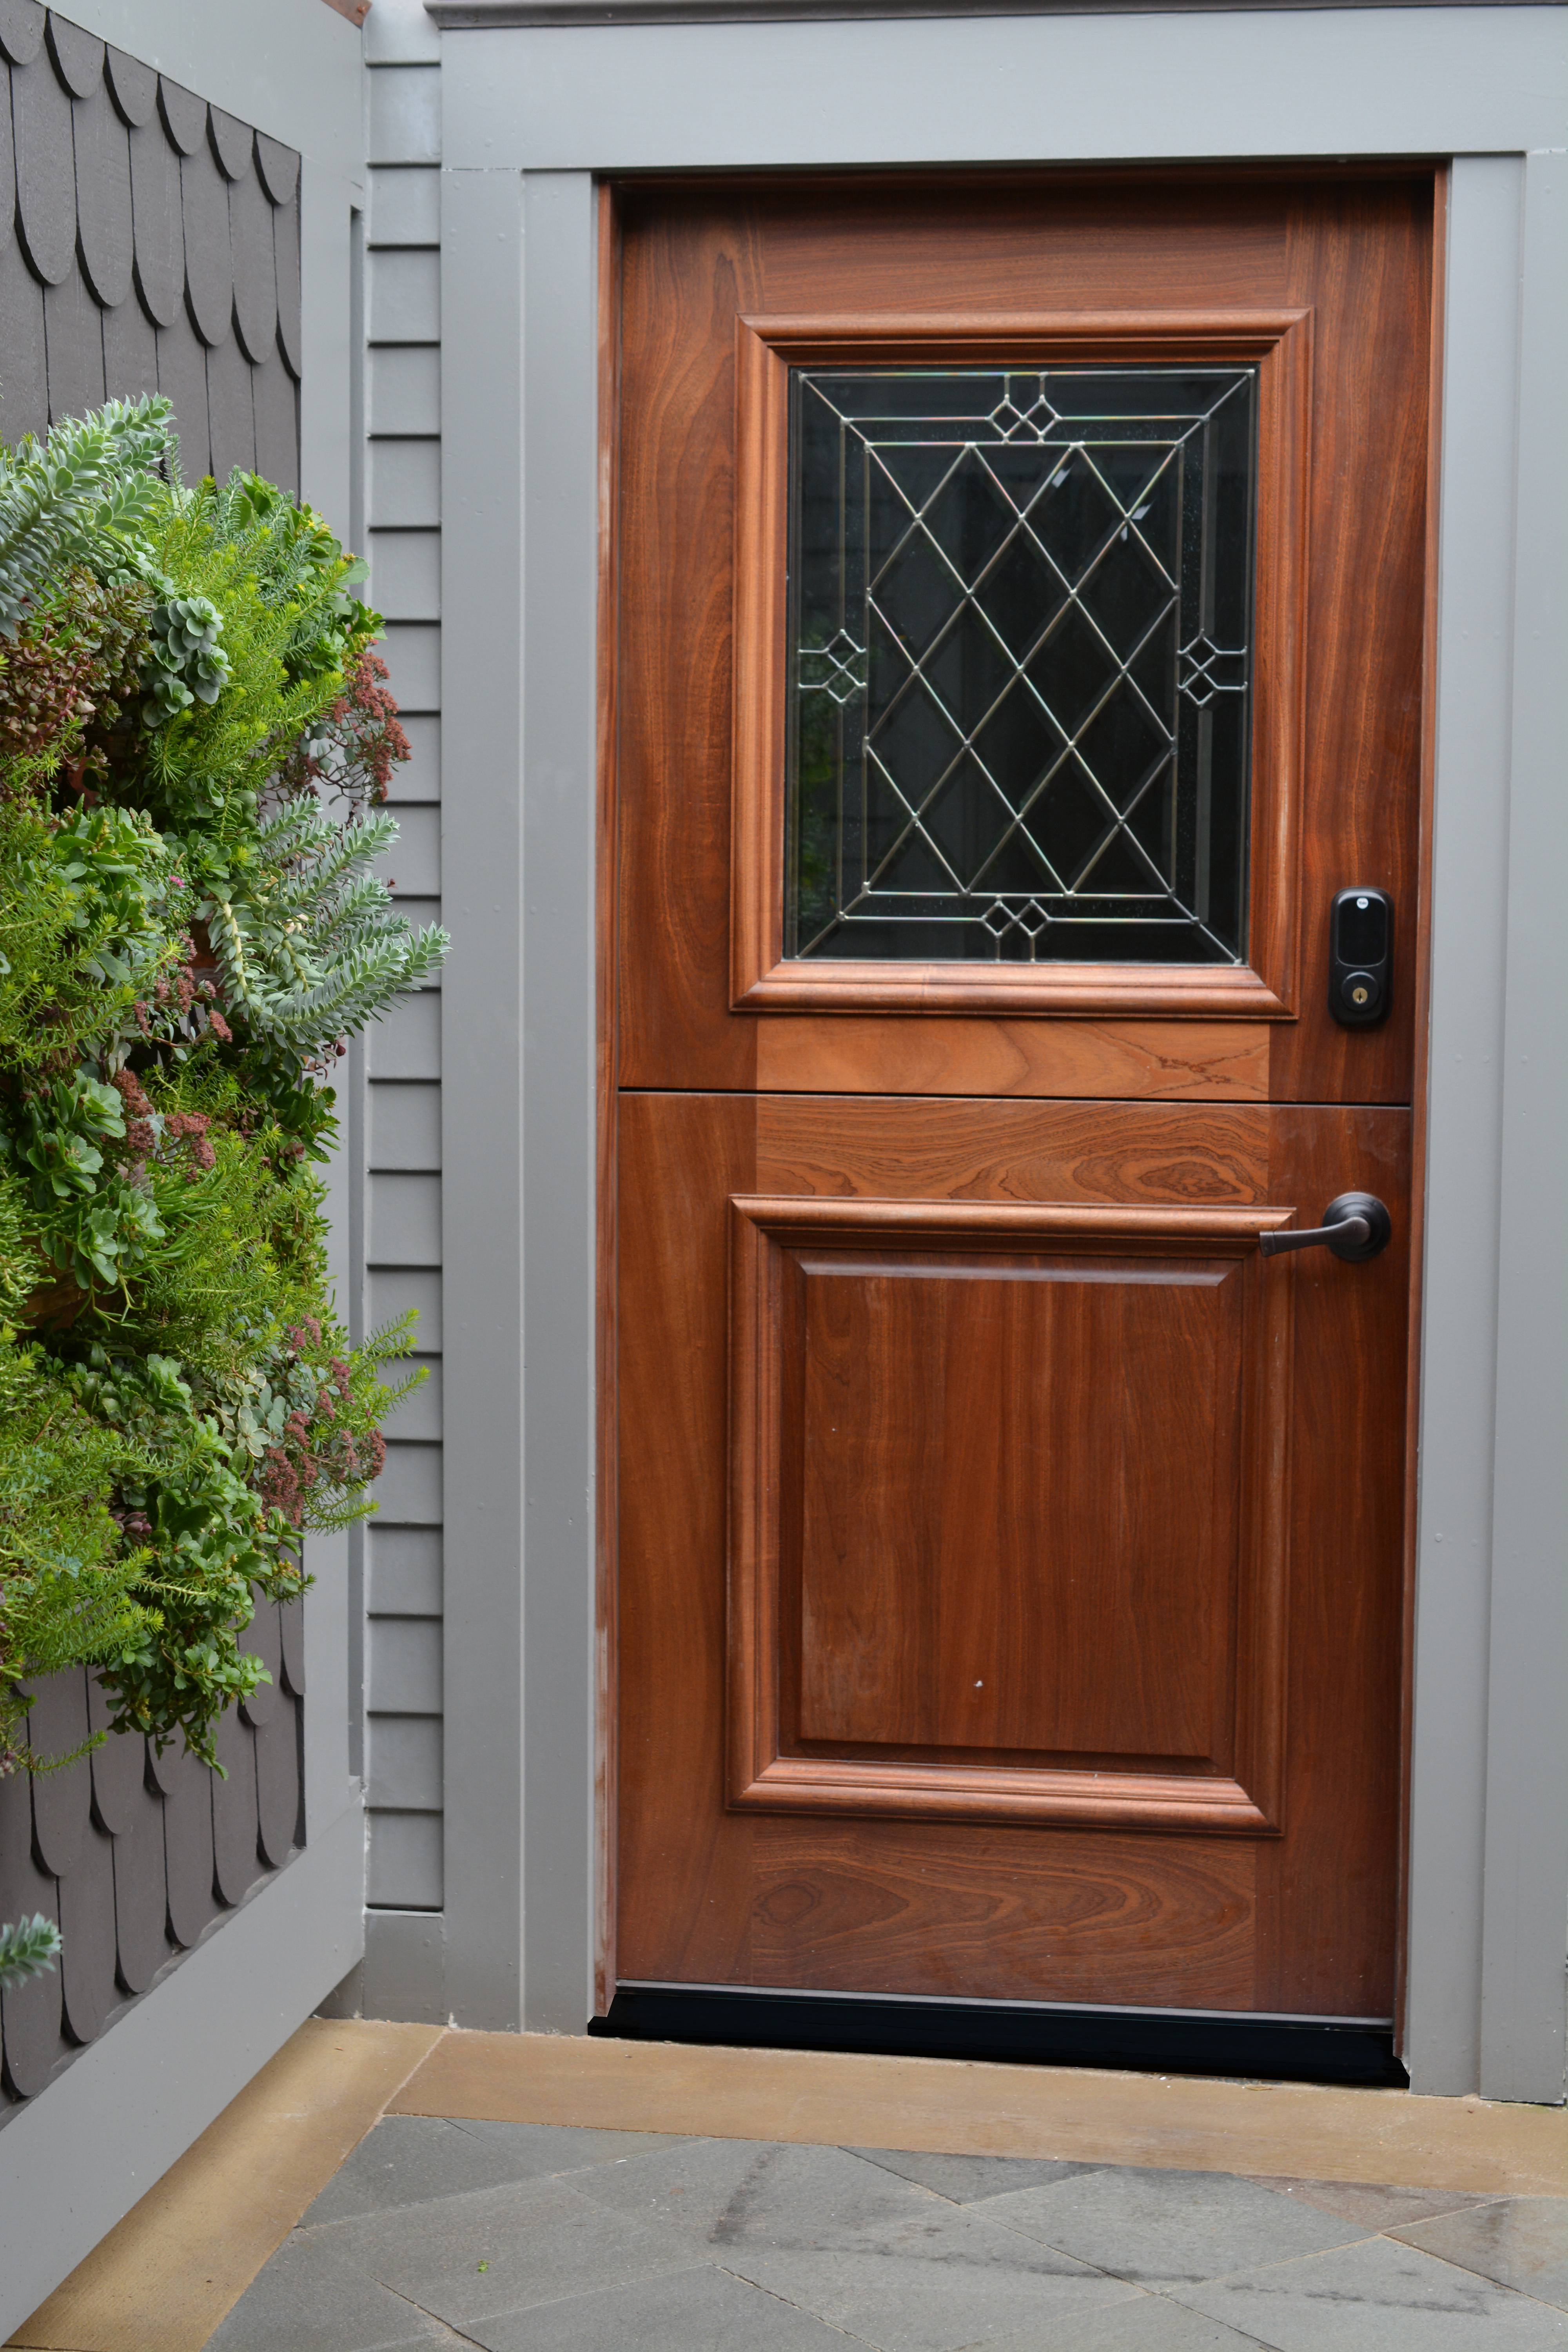 Merveilleux Manchester Design U2013 Dutch Door U2013 Grandview, Ohio